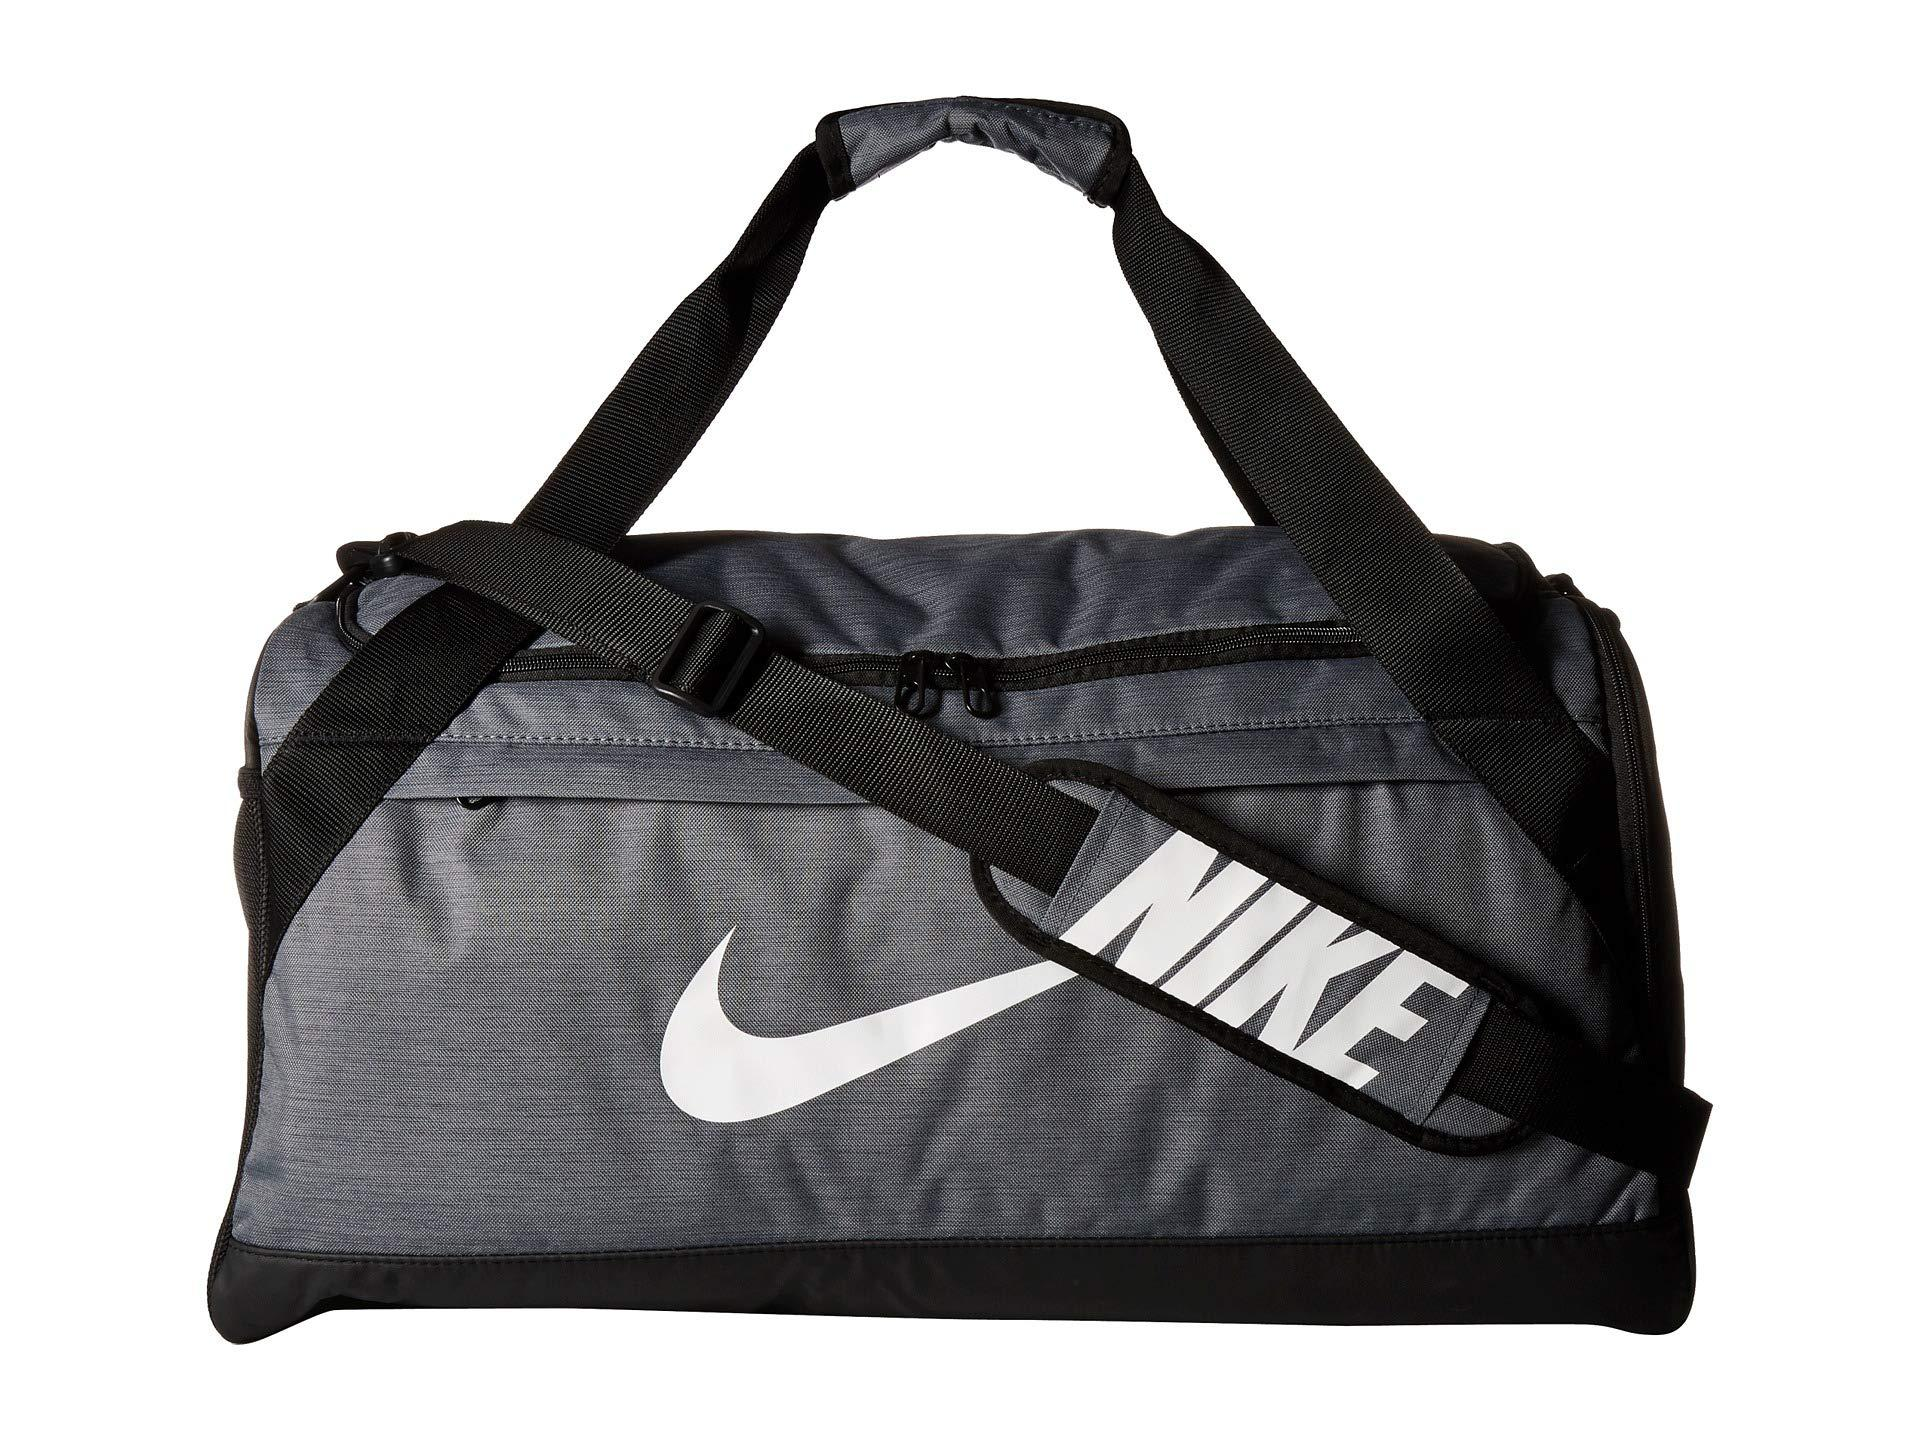 Nike. Men s Brasilia Medium Duffel Bag (university Red black white) ... 1d0334591d211